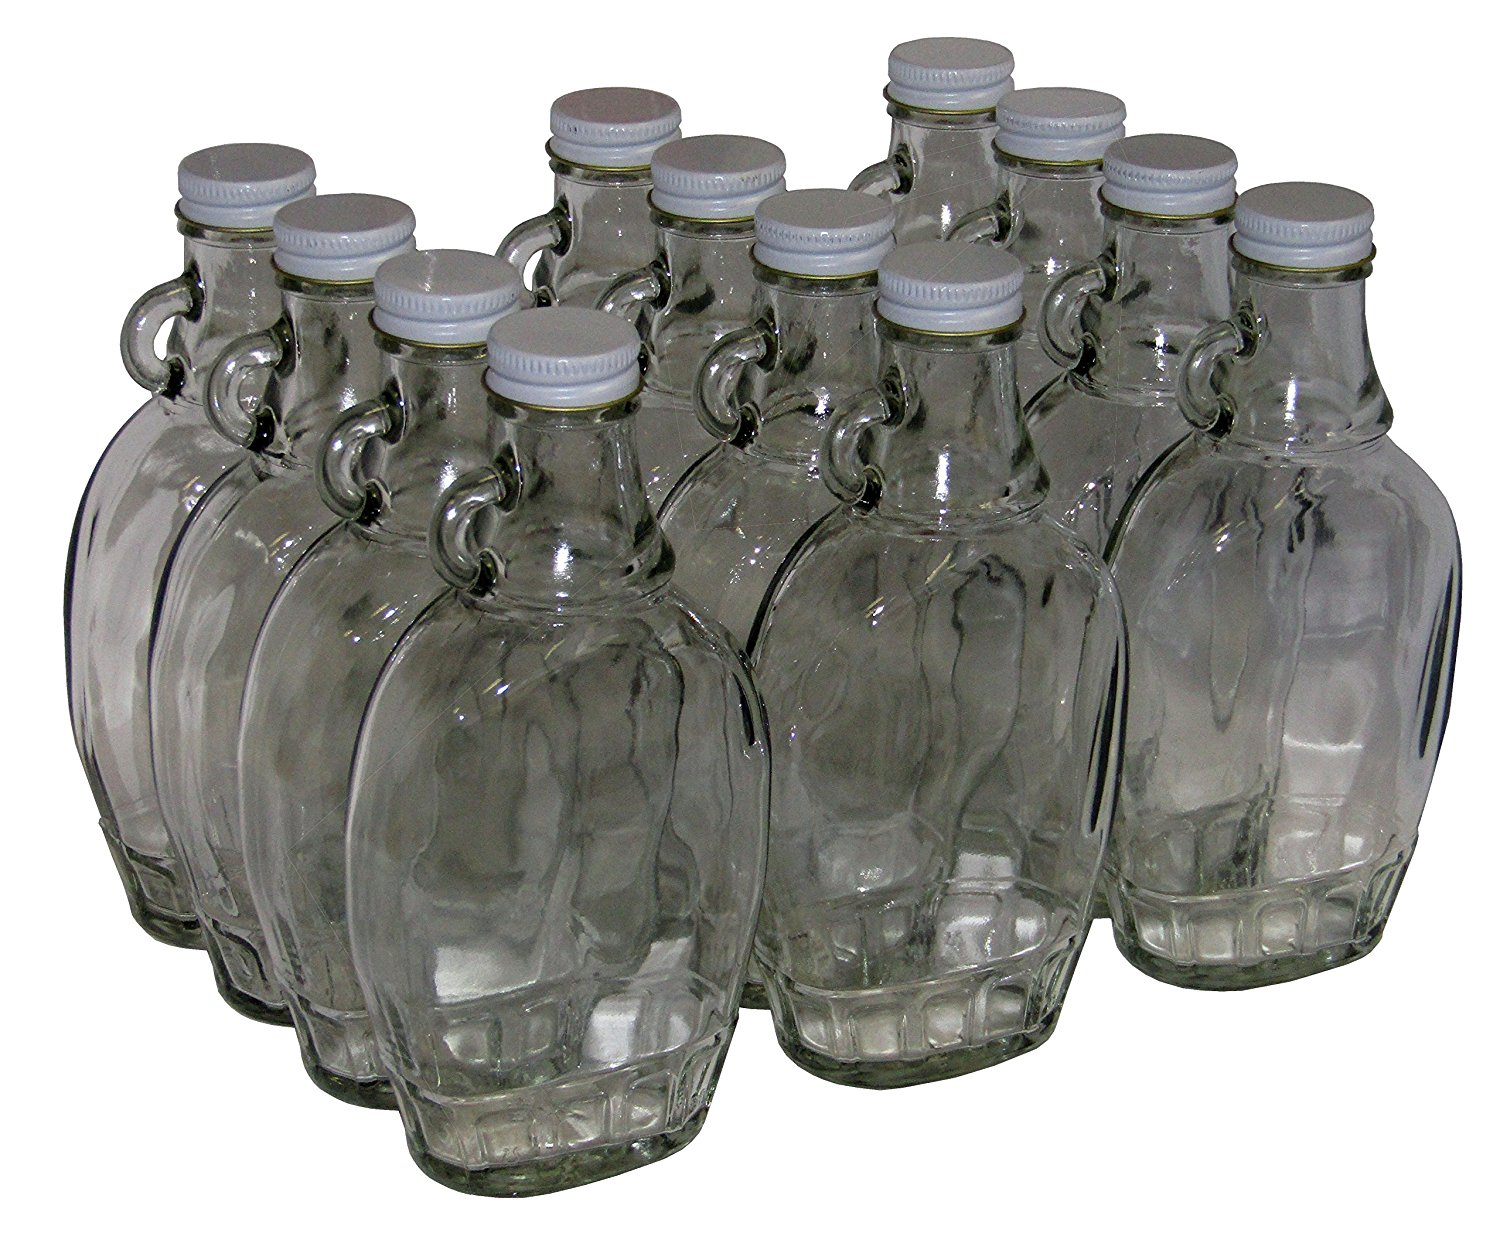 Nms 8 Ounce Glass Maple Syrup Bottles With Loop Handle